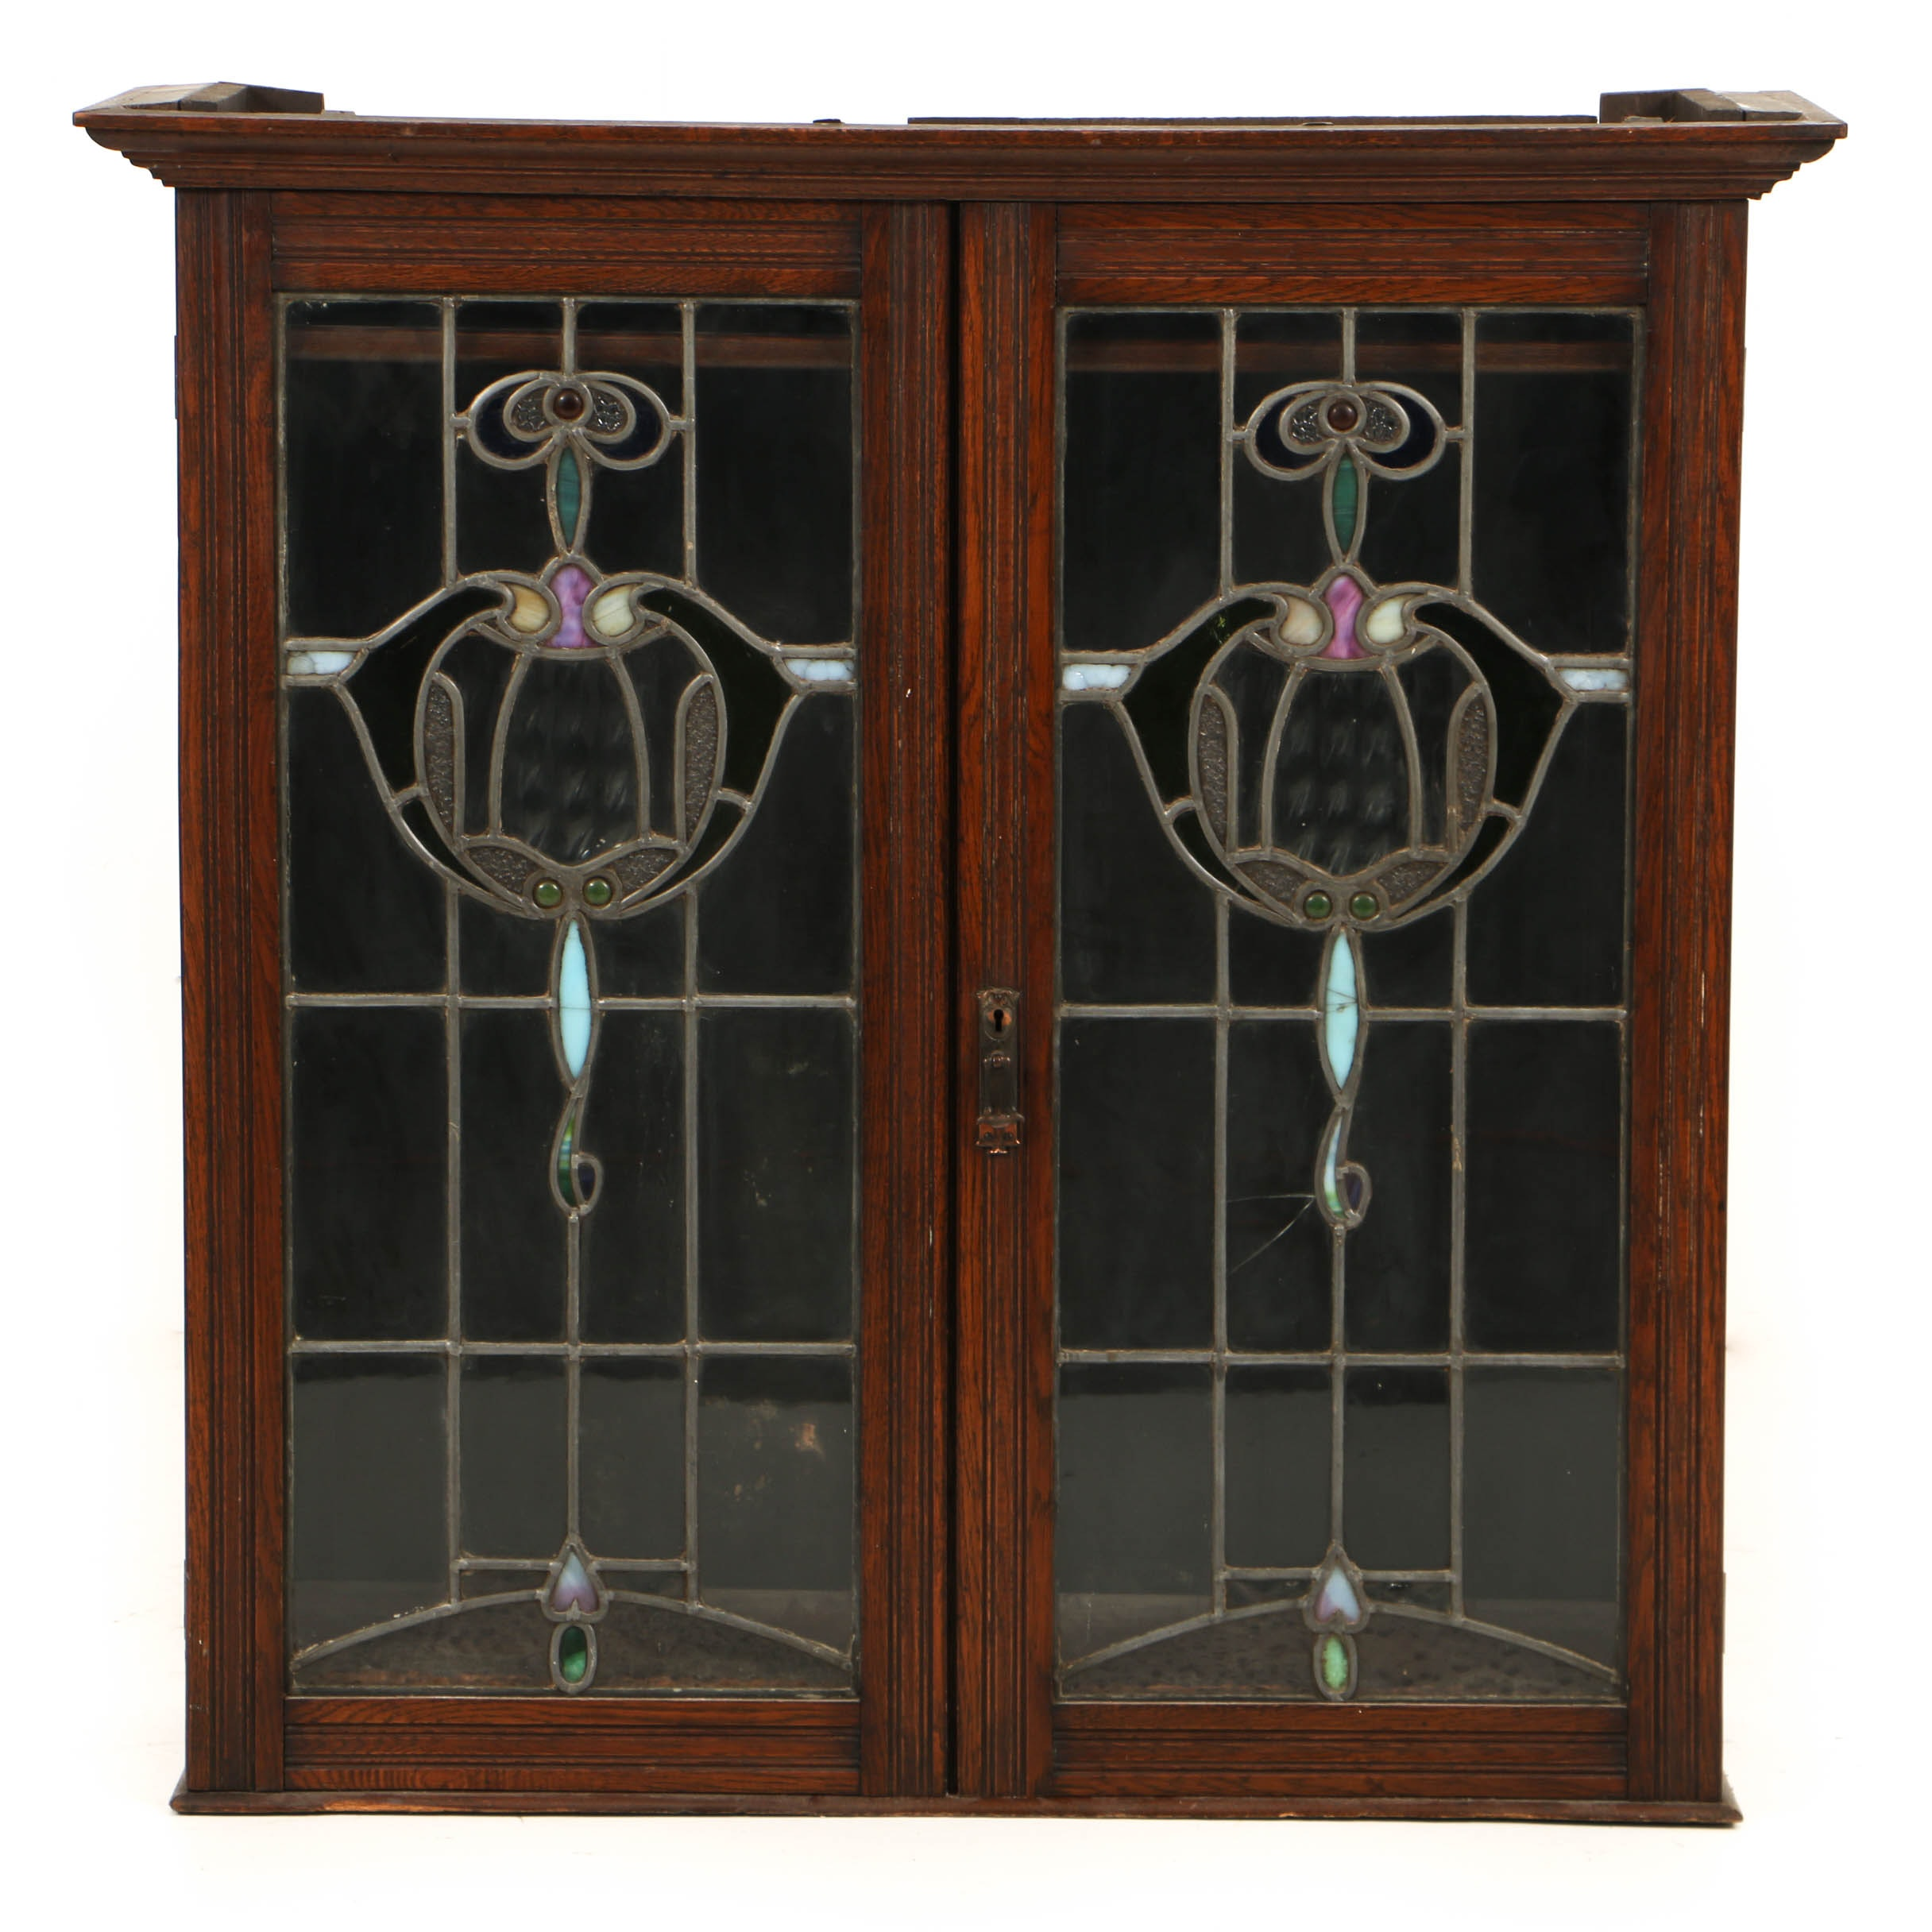 Antique Art Nouveau Oak Cabinet with Leaded and Stained Glass Doors